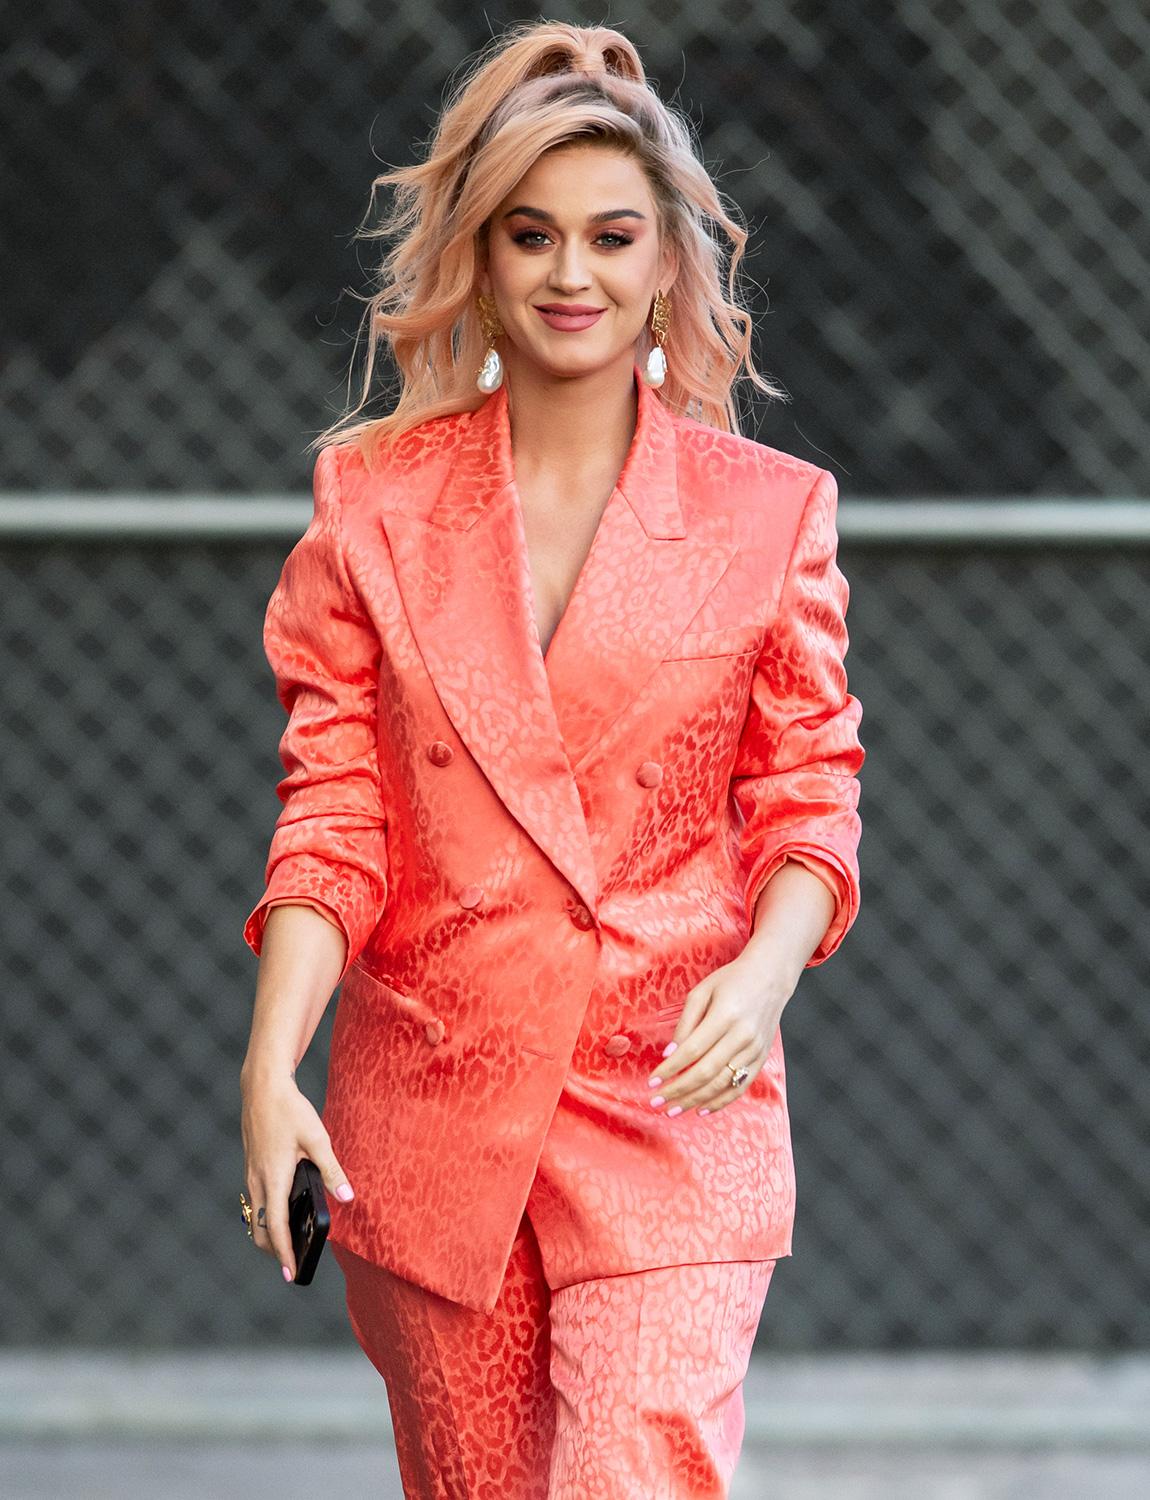 Katy Perry is seen at 'Jimmy Kimmel Live' on February 12, 2020 in Los Angeles, California